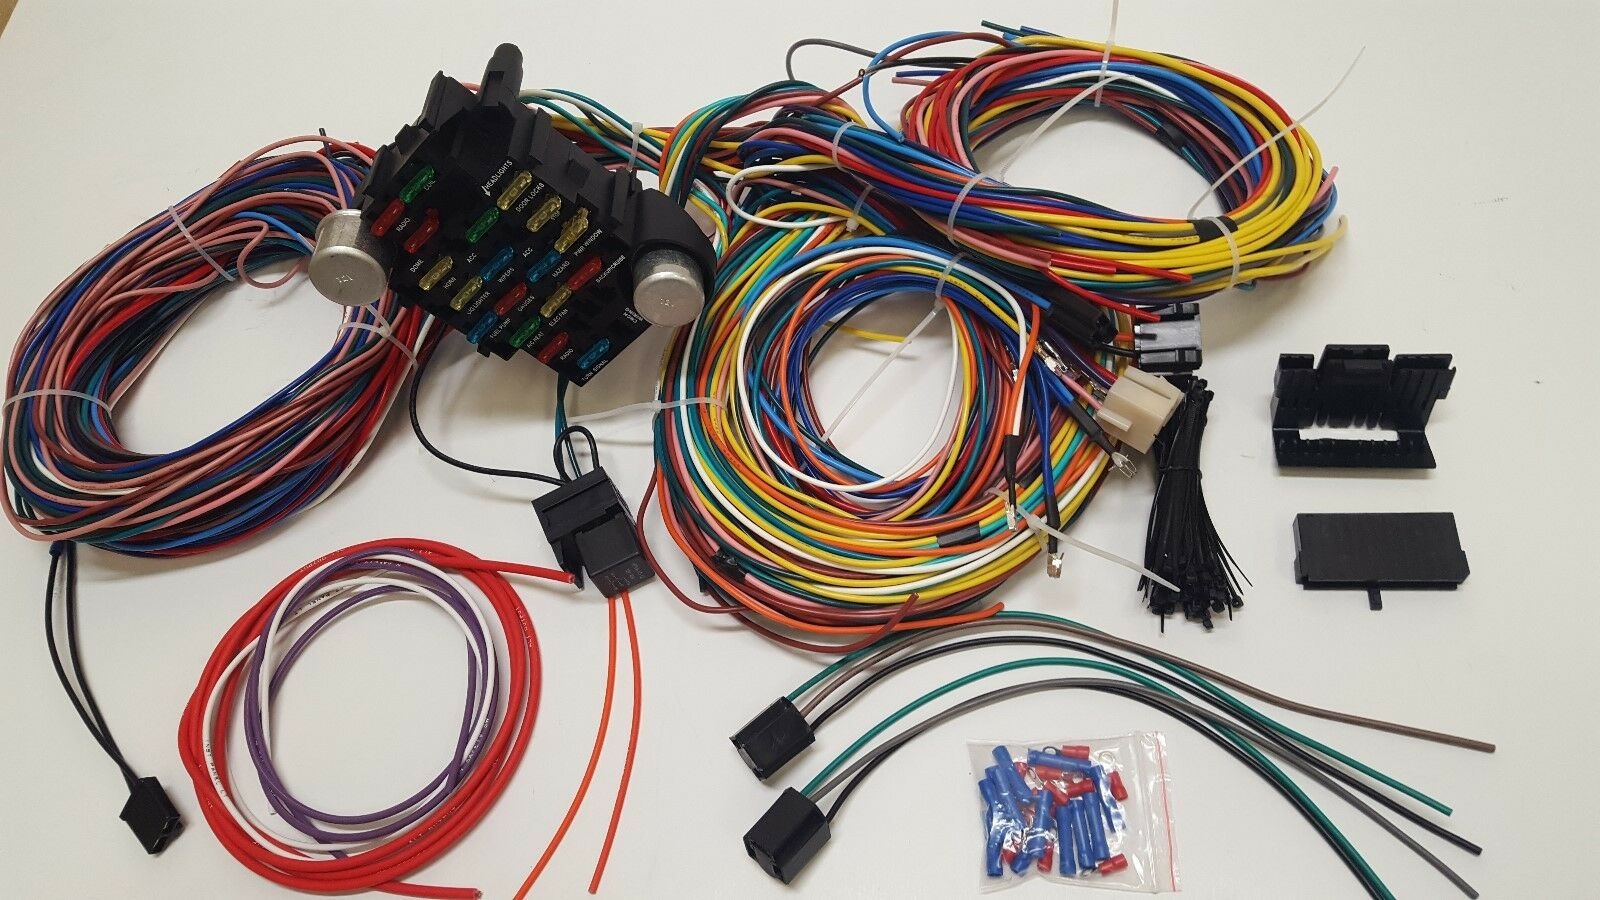 Gearhead 1966 1967 1968 Chevy Chevrolet Impala Wire Harness Complete Wiring  Kit 1 of 5Only 2 available ...